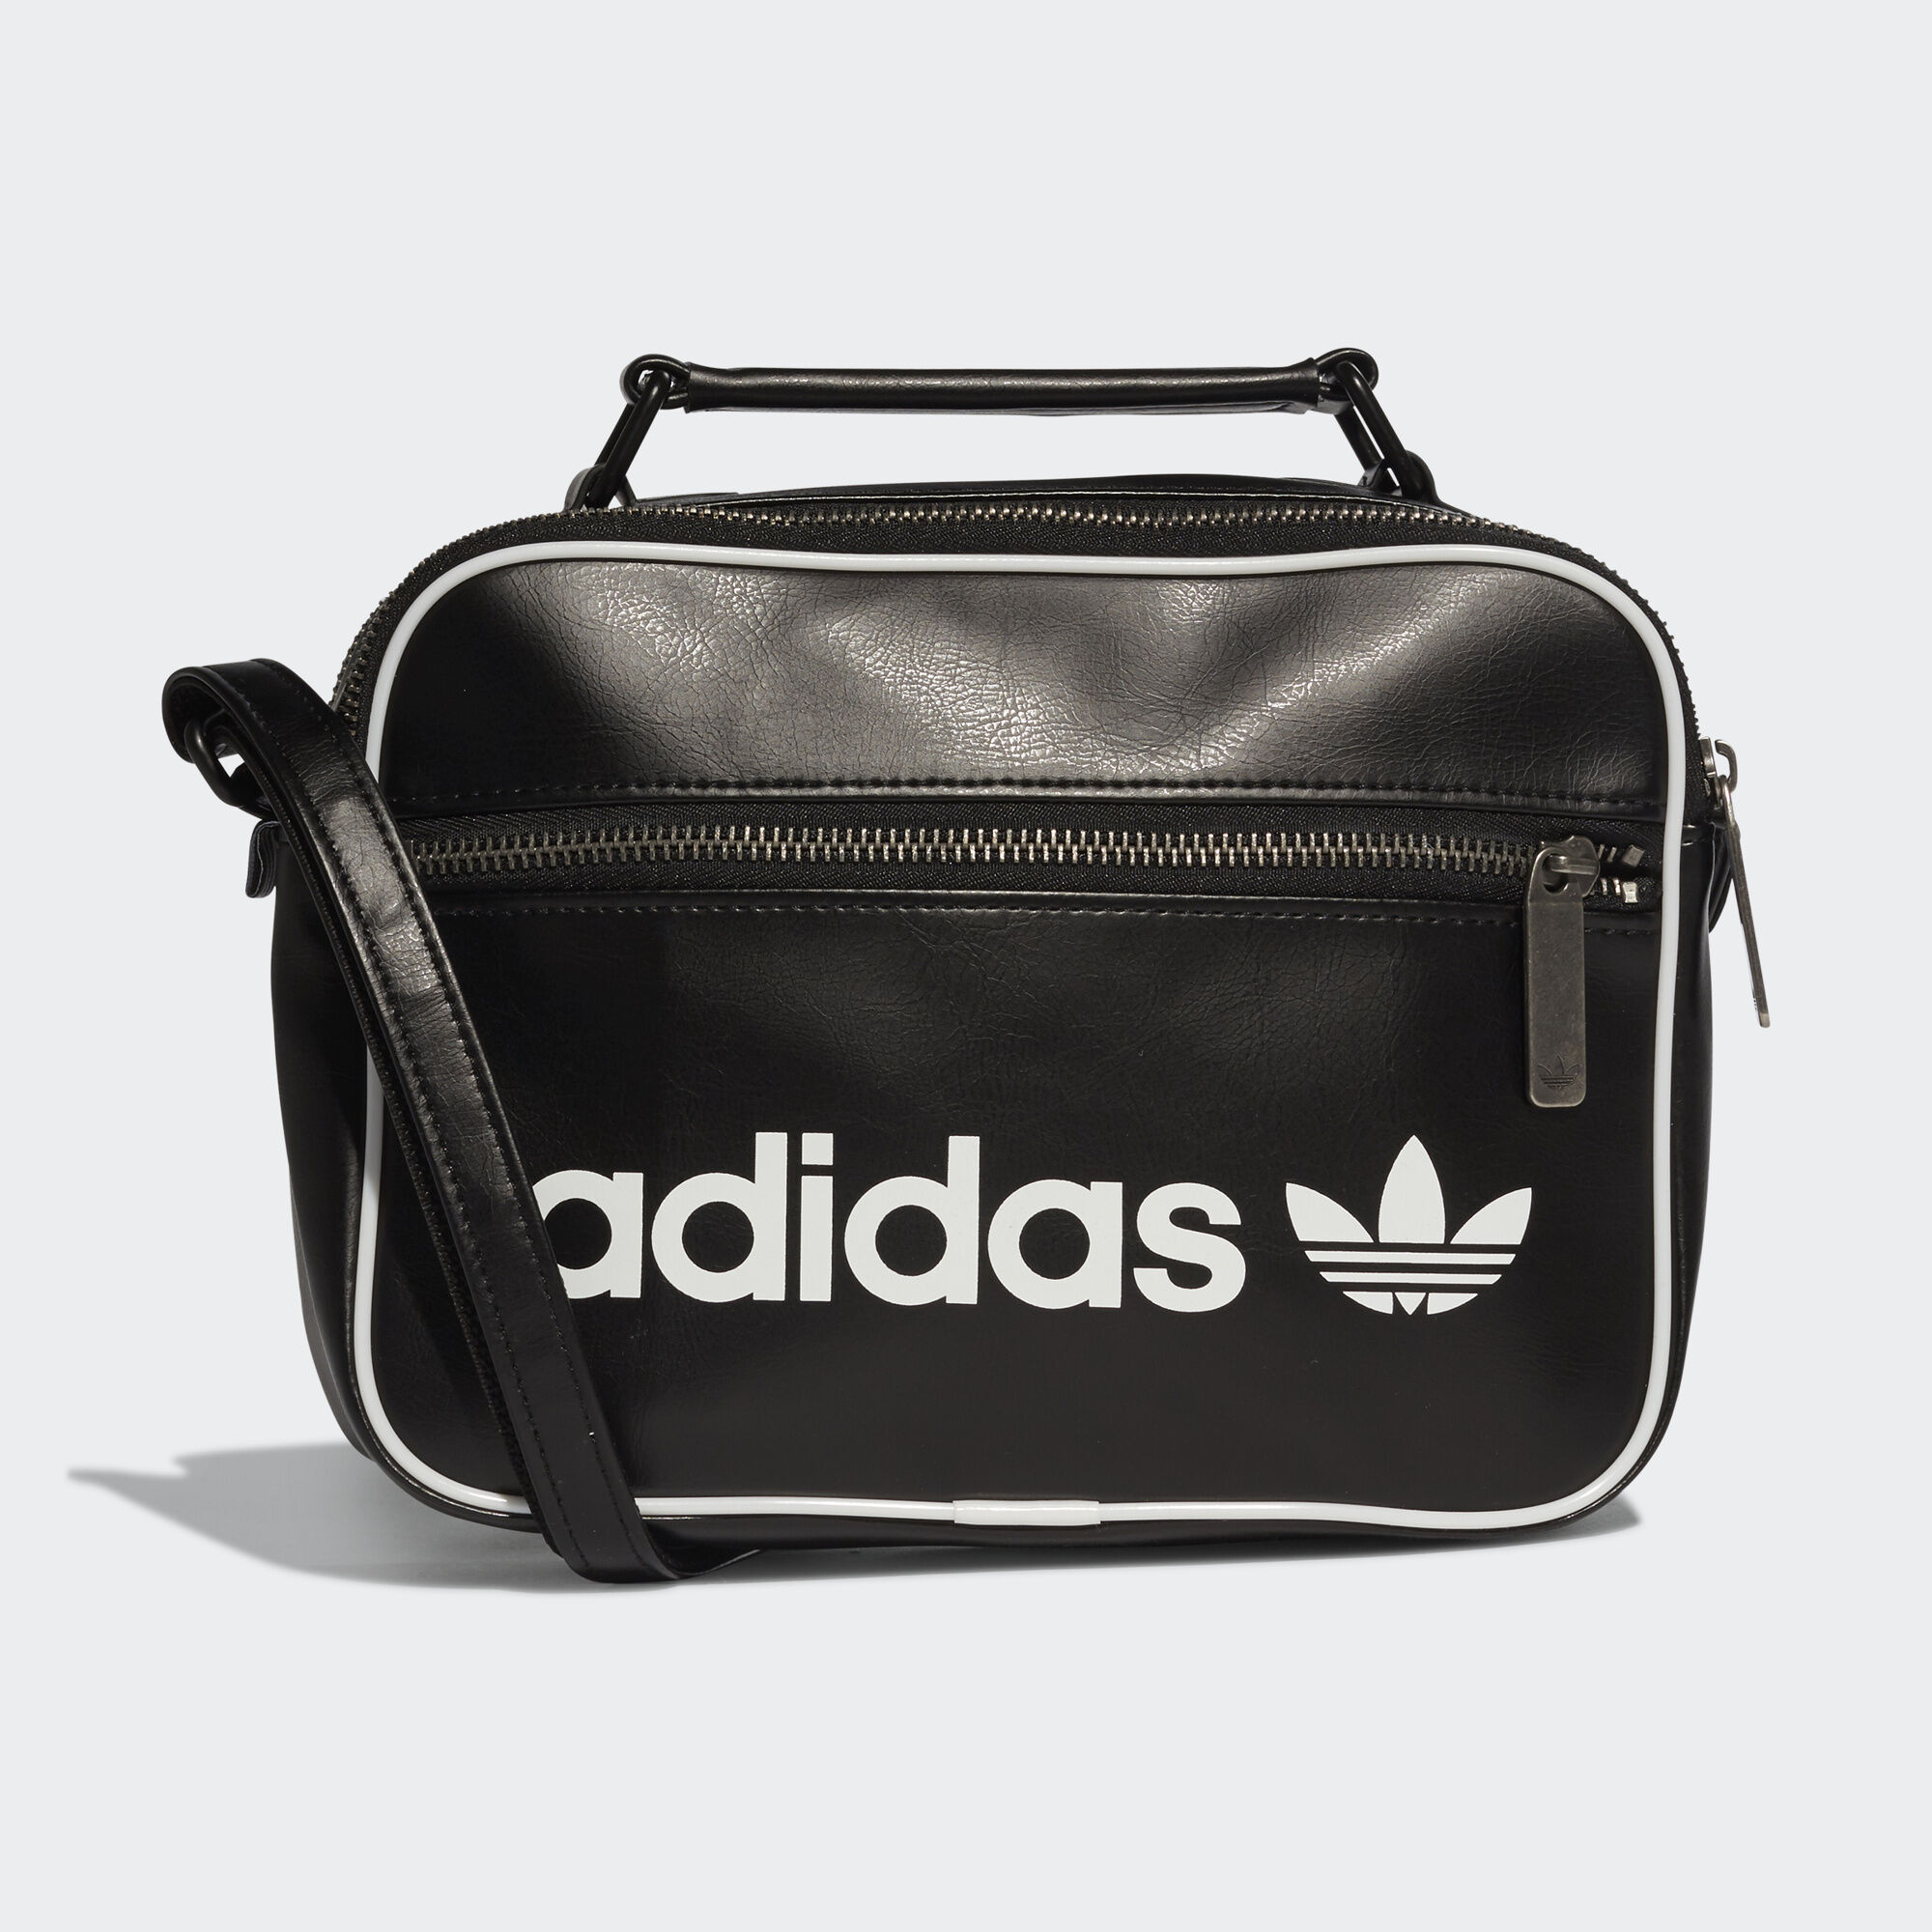 38e3362fc53 Buy shoulder bag adidas   OFF69% Discounted